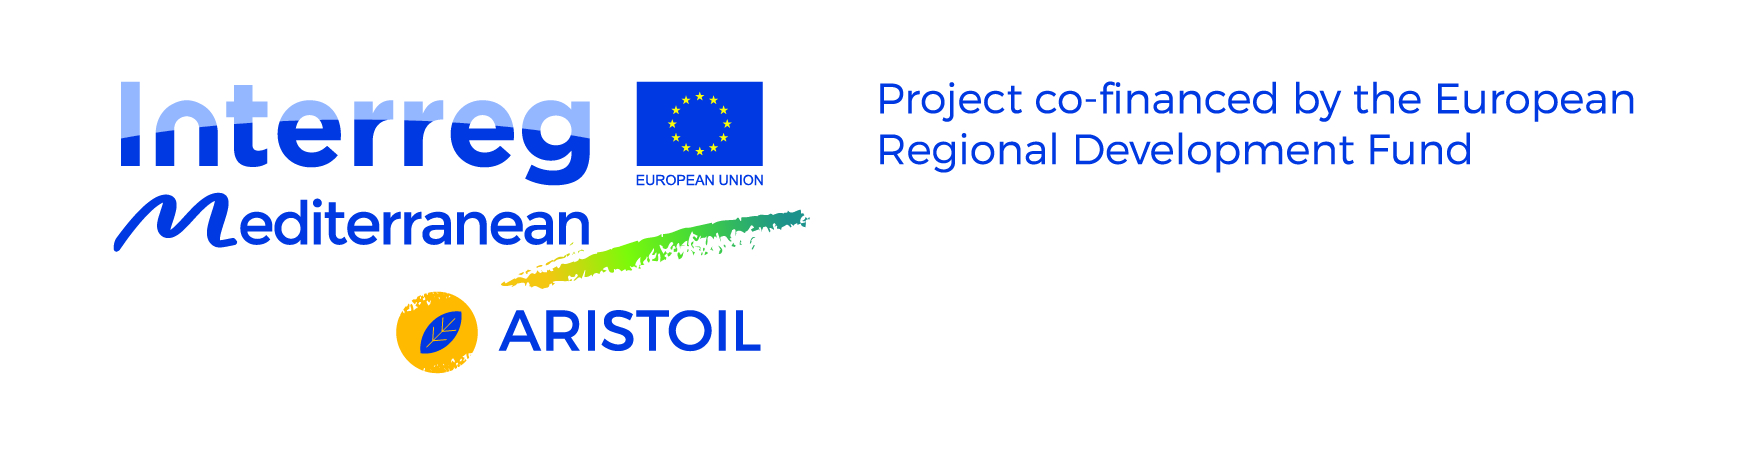 Aristoil Interreg MED program